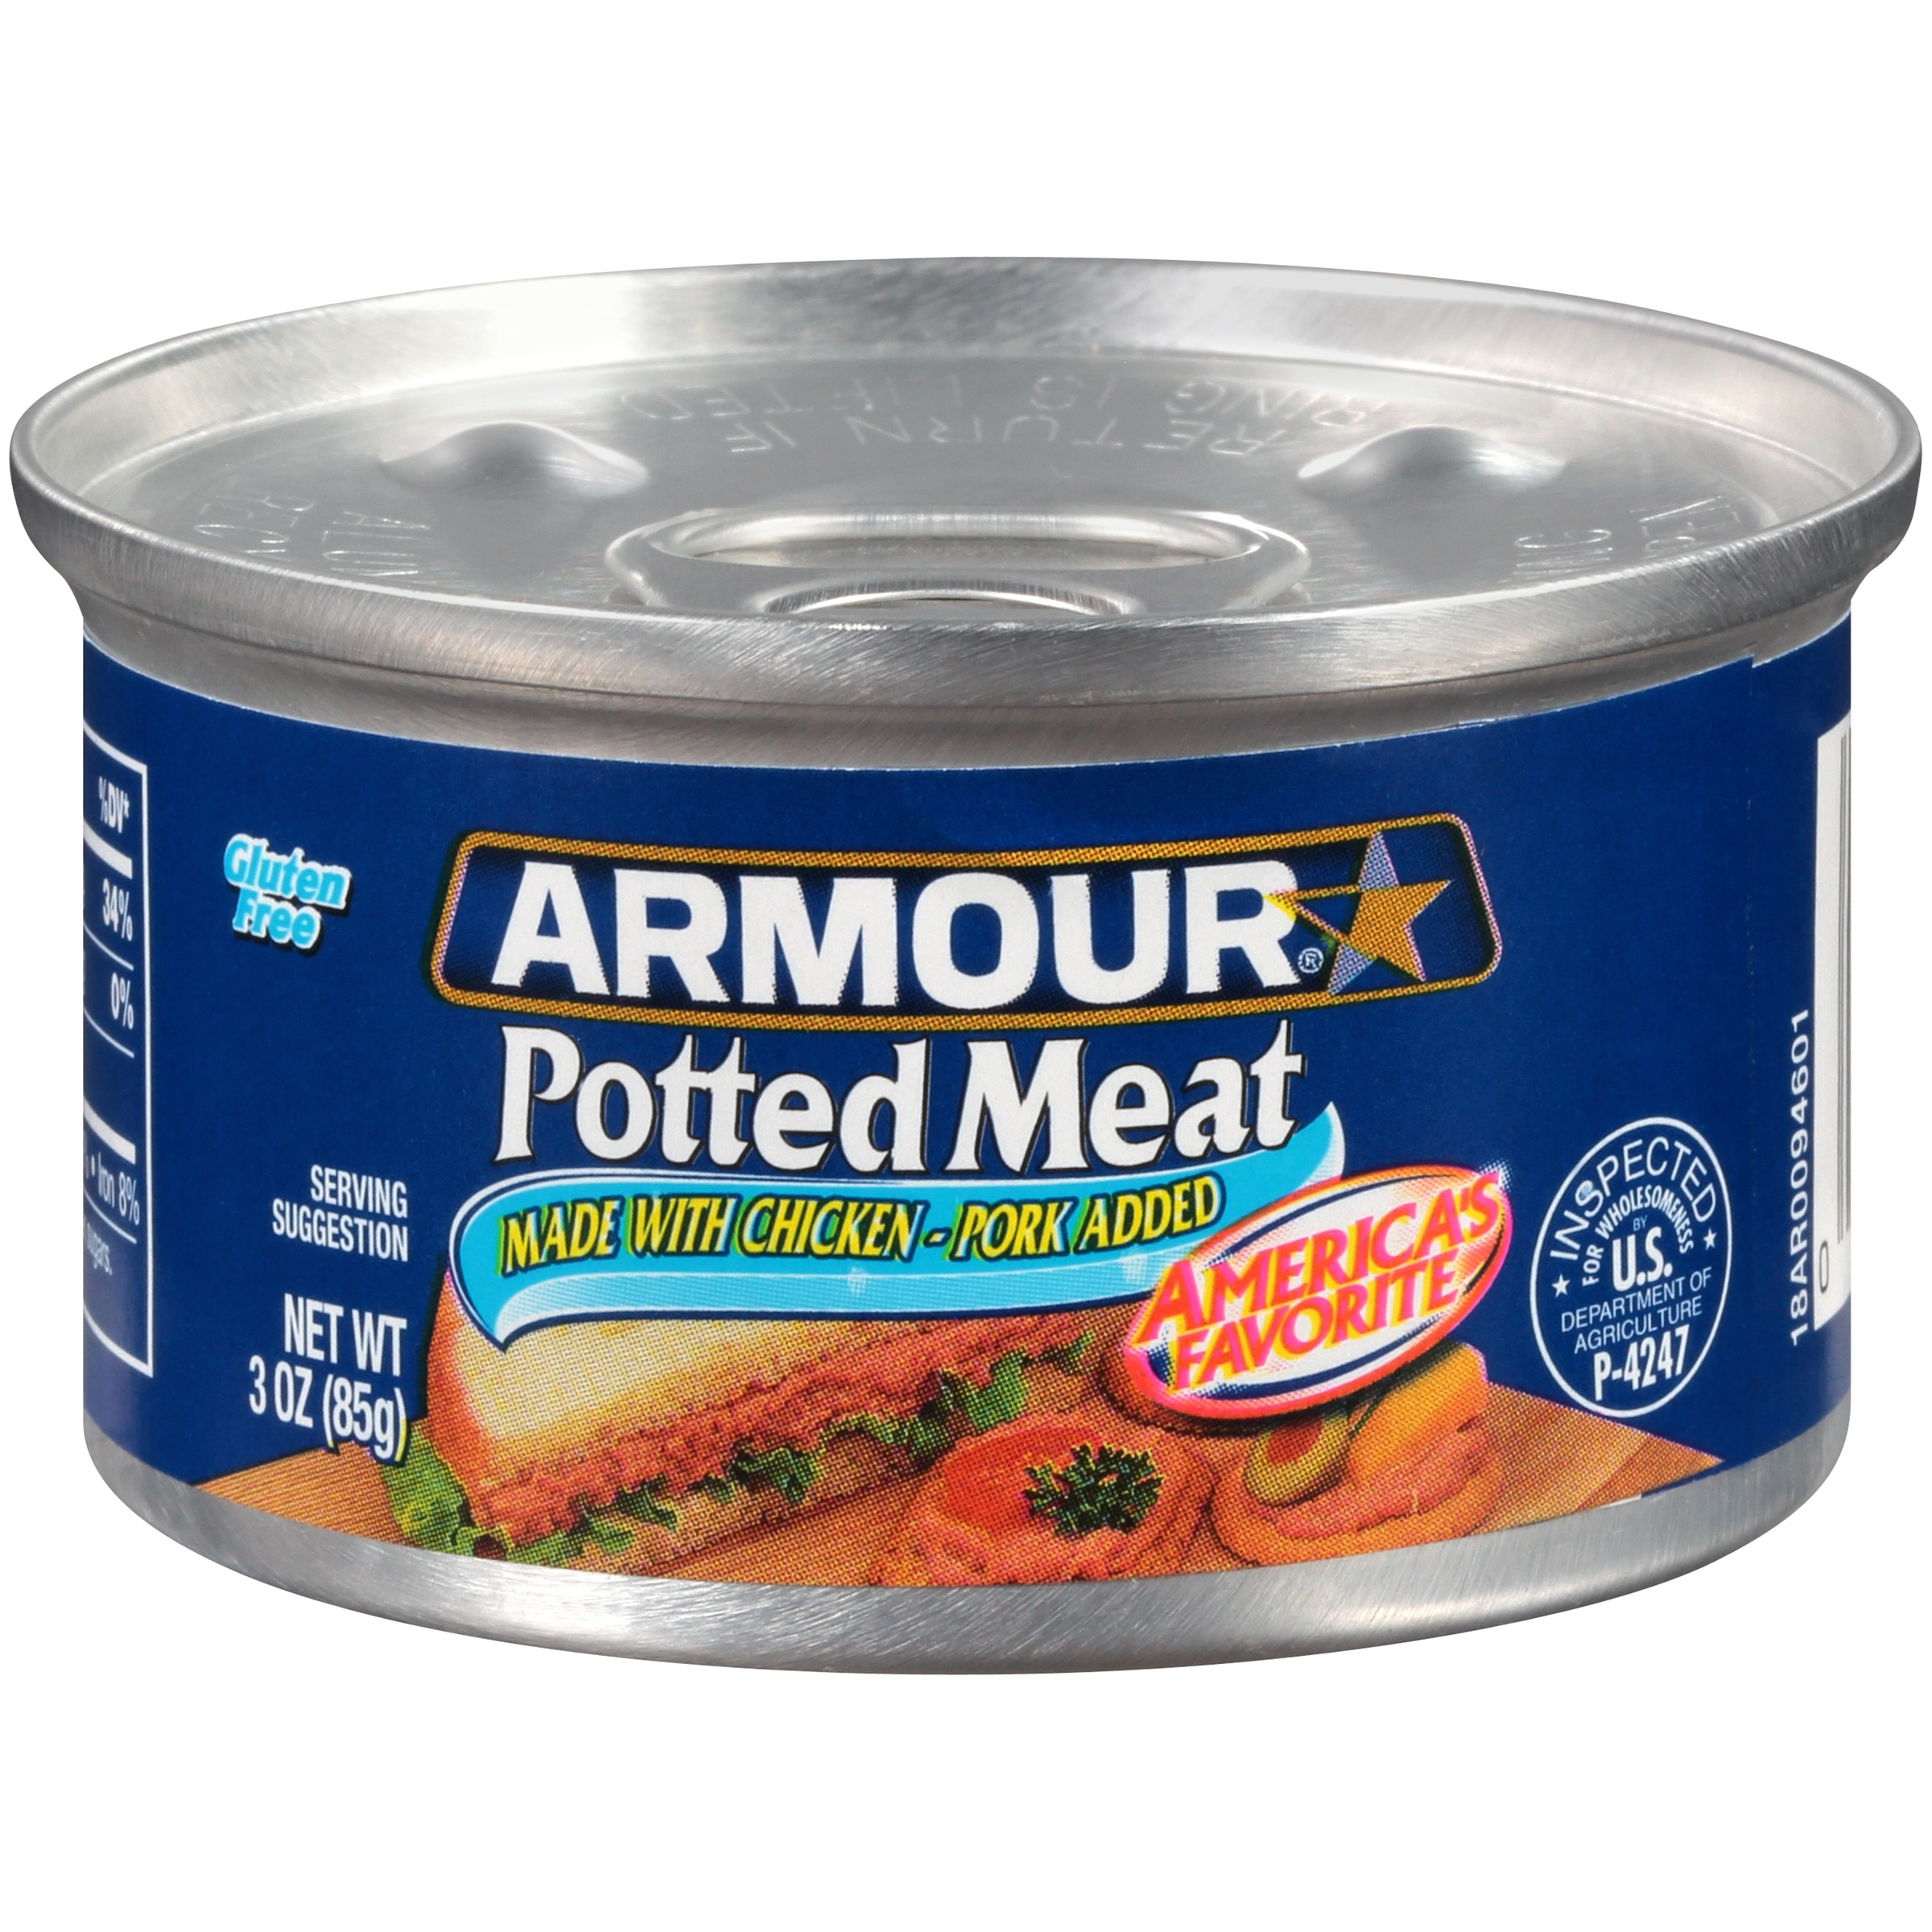 Armour Chicken & Pork Potted Meat, 3 oz Can